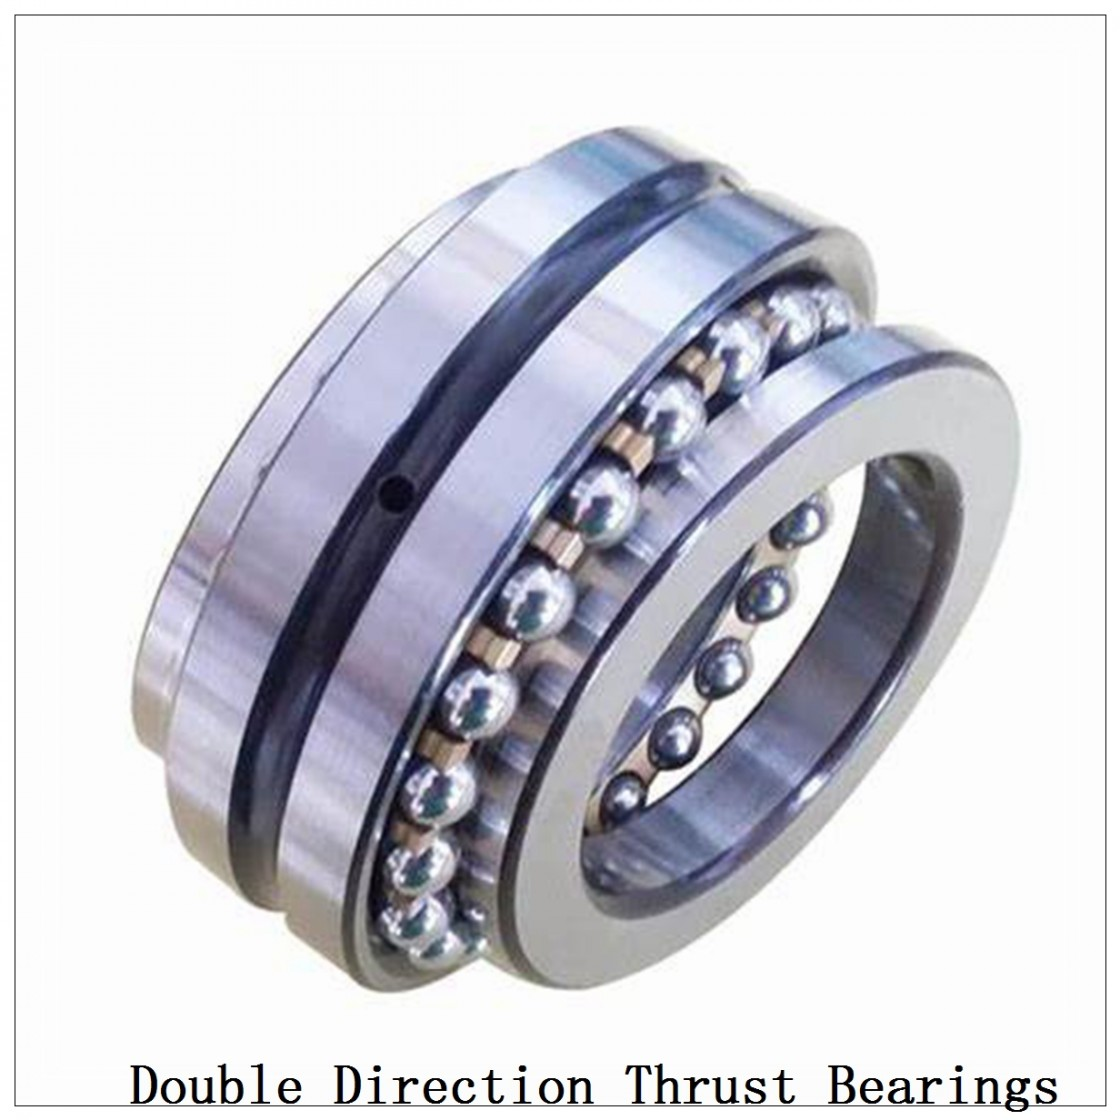 521823 Double direction thrust bearings